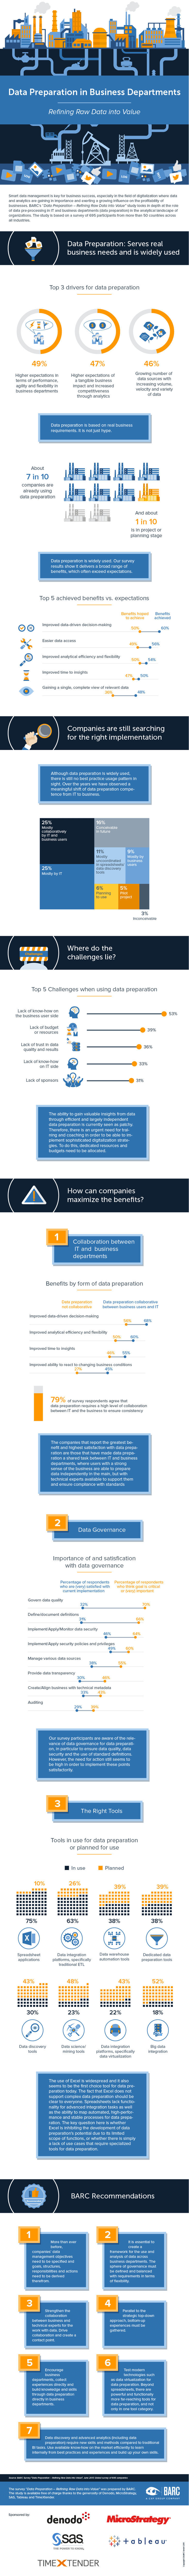 Infographic of data preparation survey findings